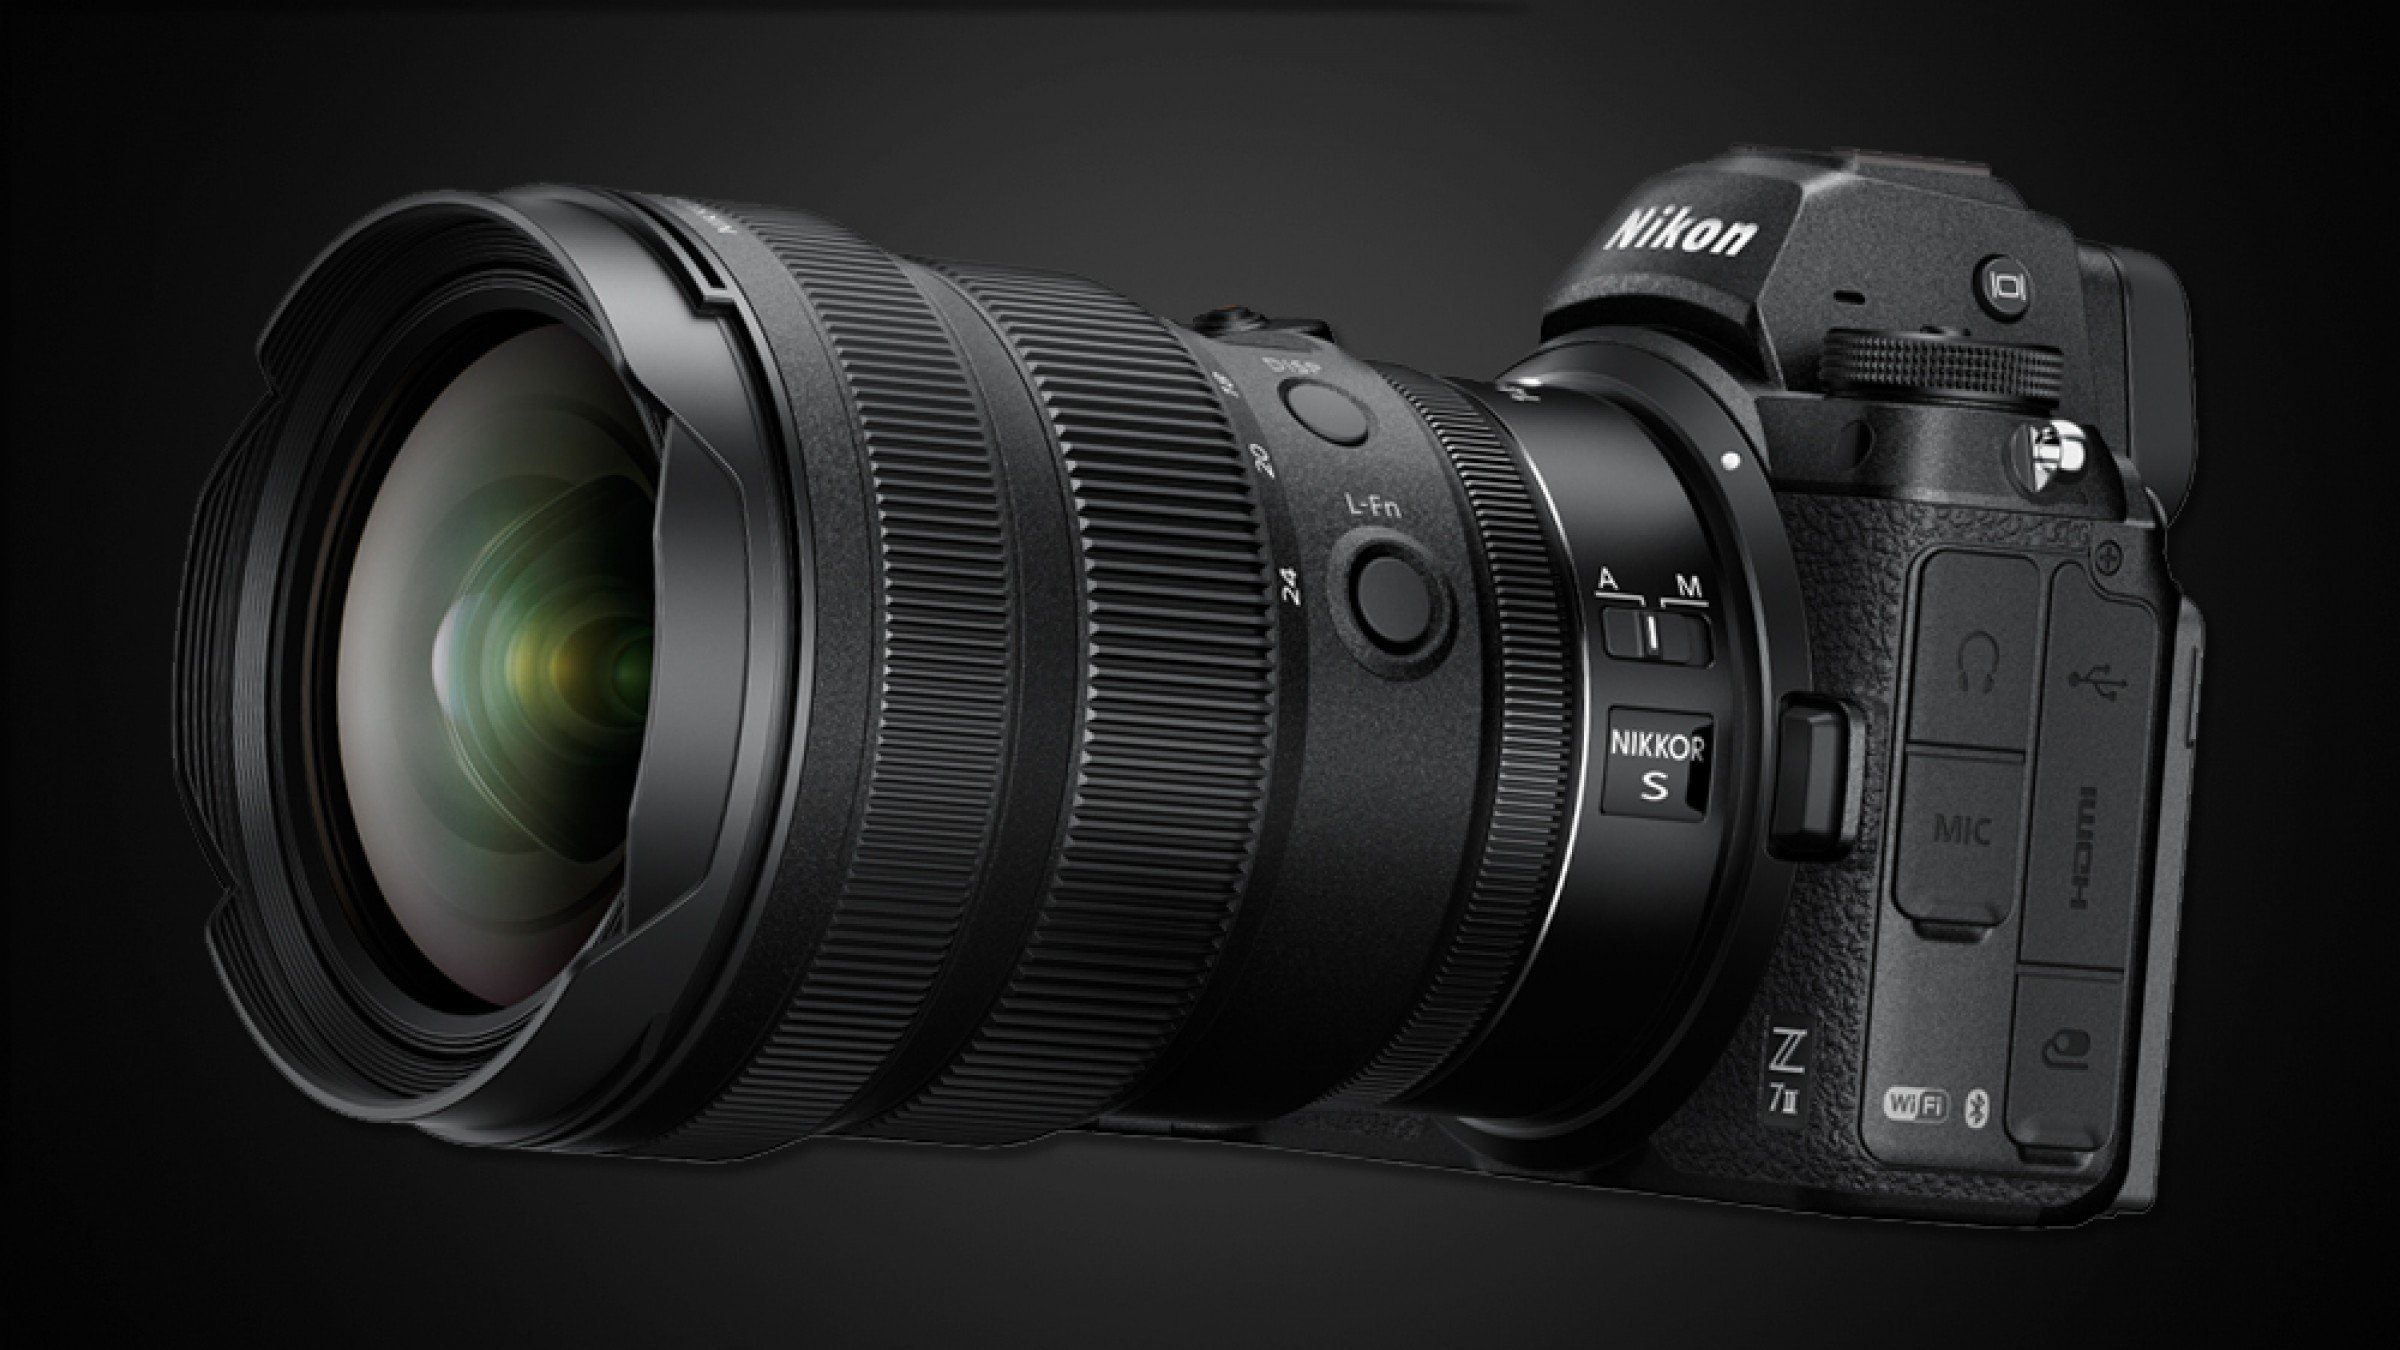 Nikon Z7 II and Z6 II Cameras To Support Blackmagic and ProRes RAW